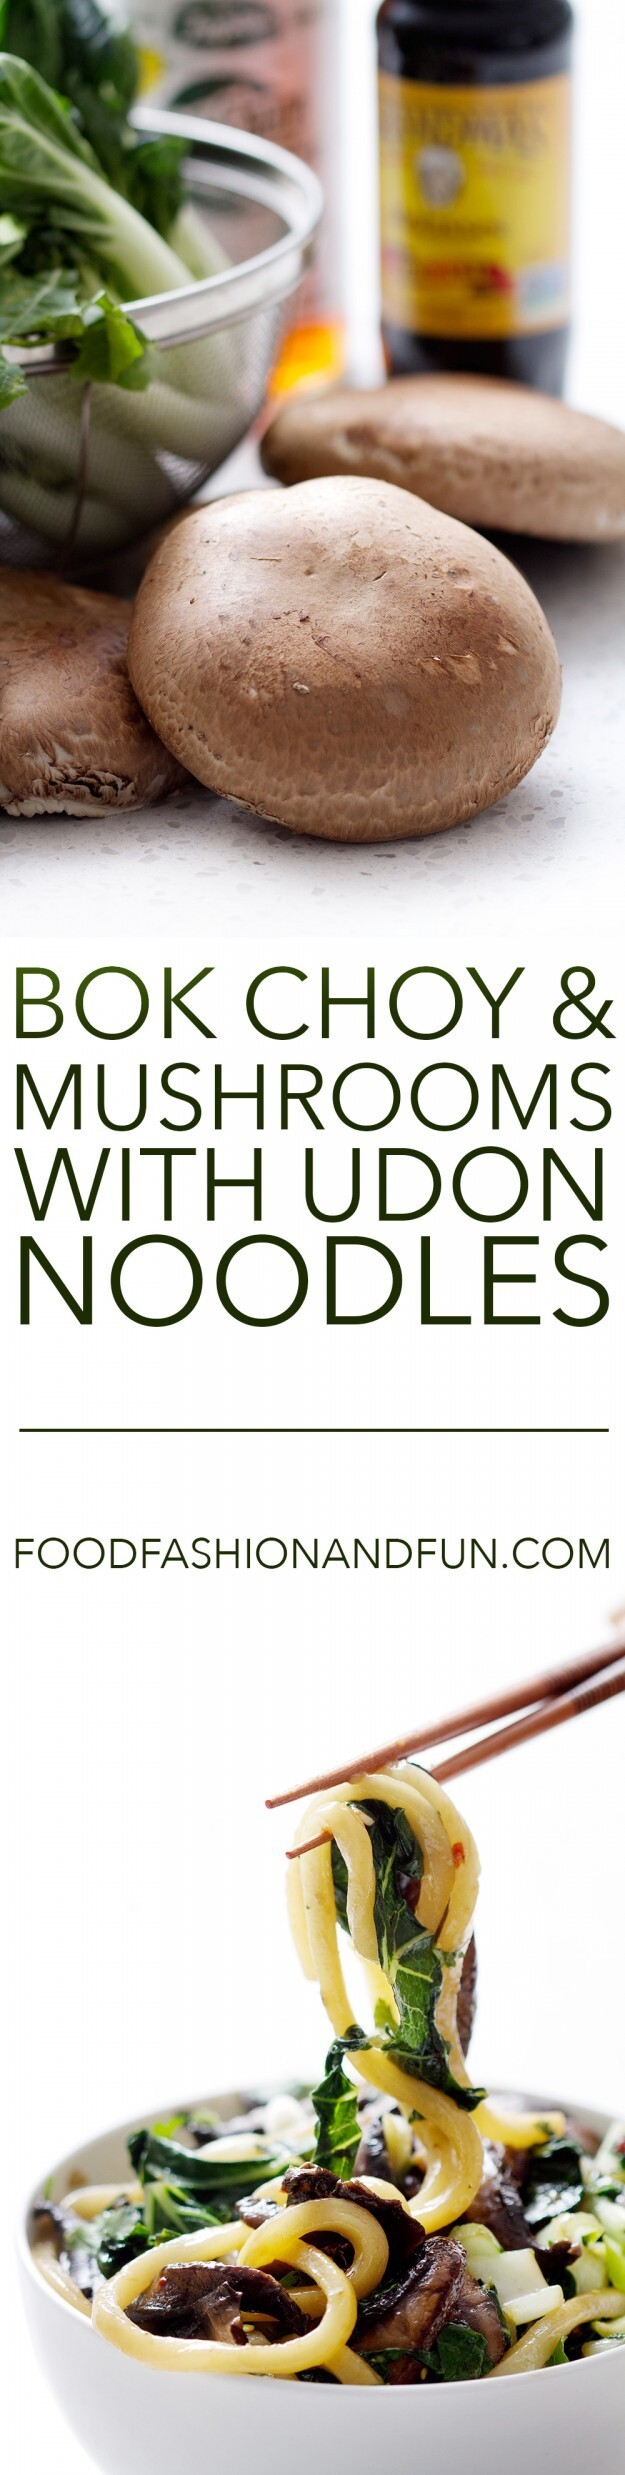 Let's Eat | Bok Choy and Mushrooms with Udon Noodles